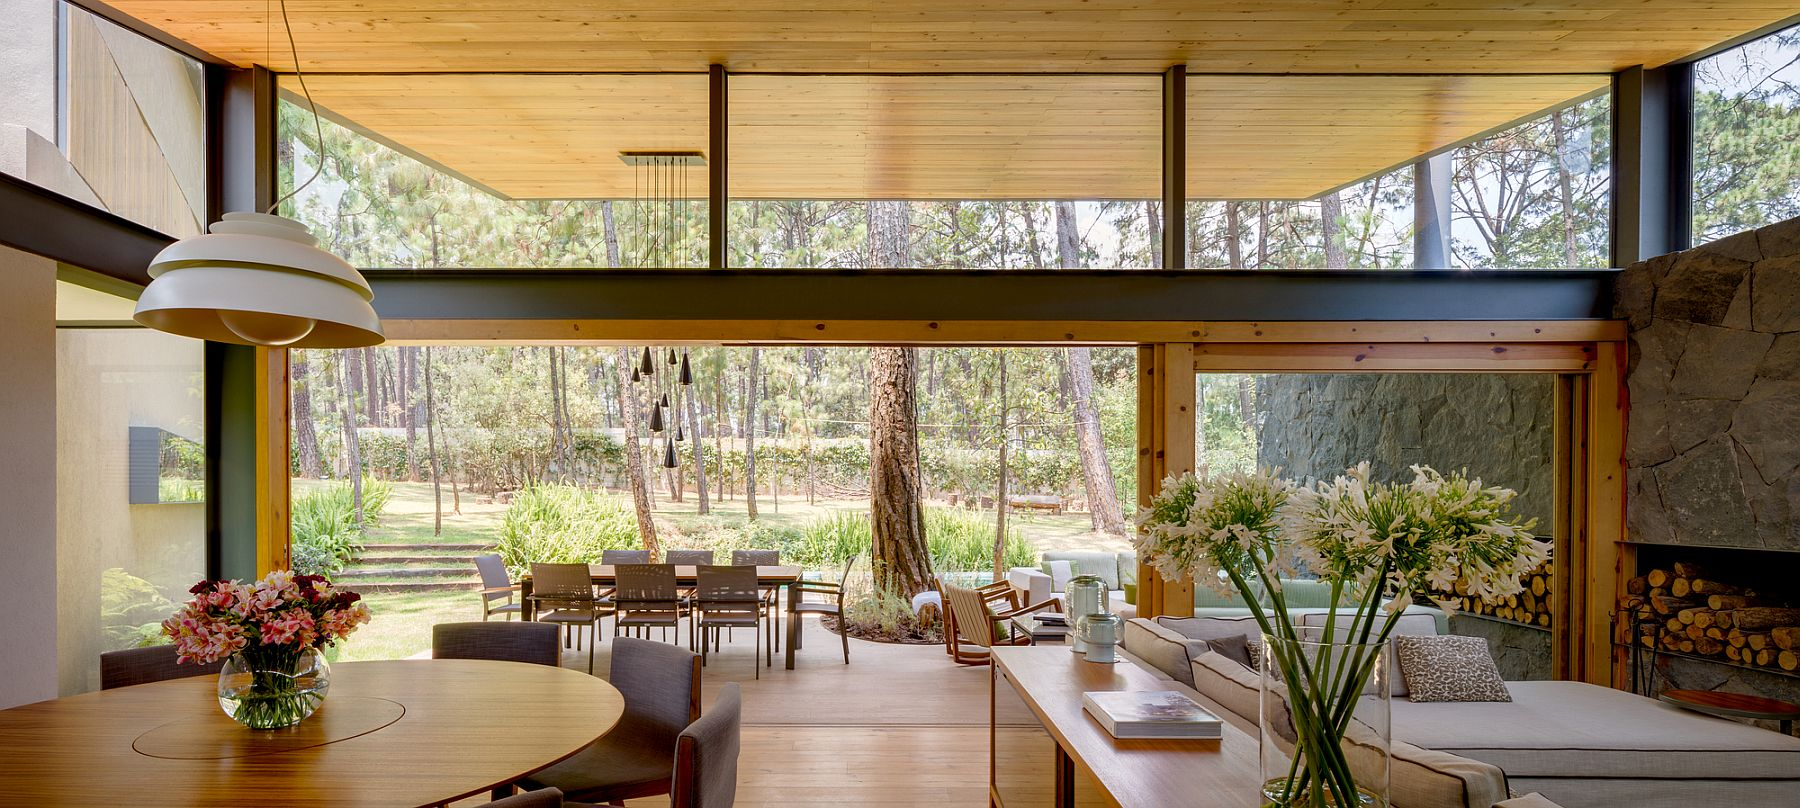 Open living area and dining space at the Five House